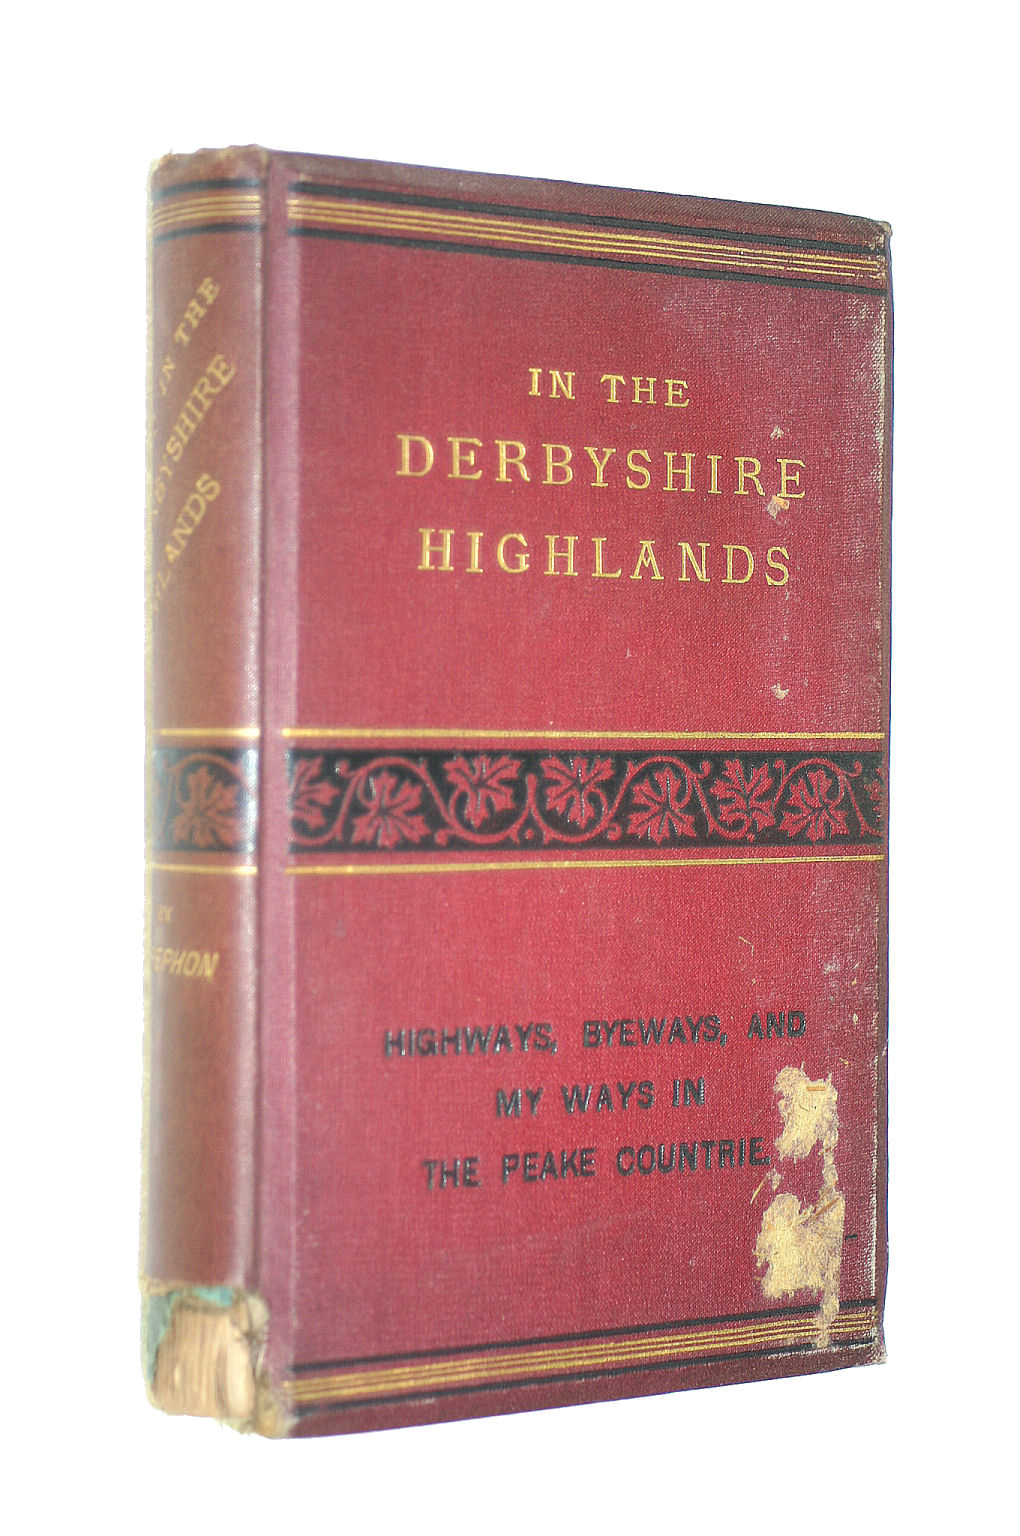 Image for In The Derbyshire Highlands. Highways, Byeways And My Ways In The Peake Countrie